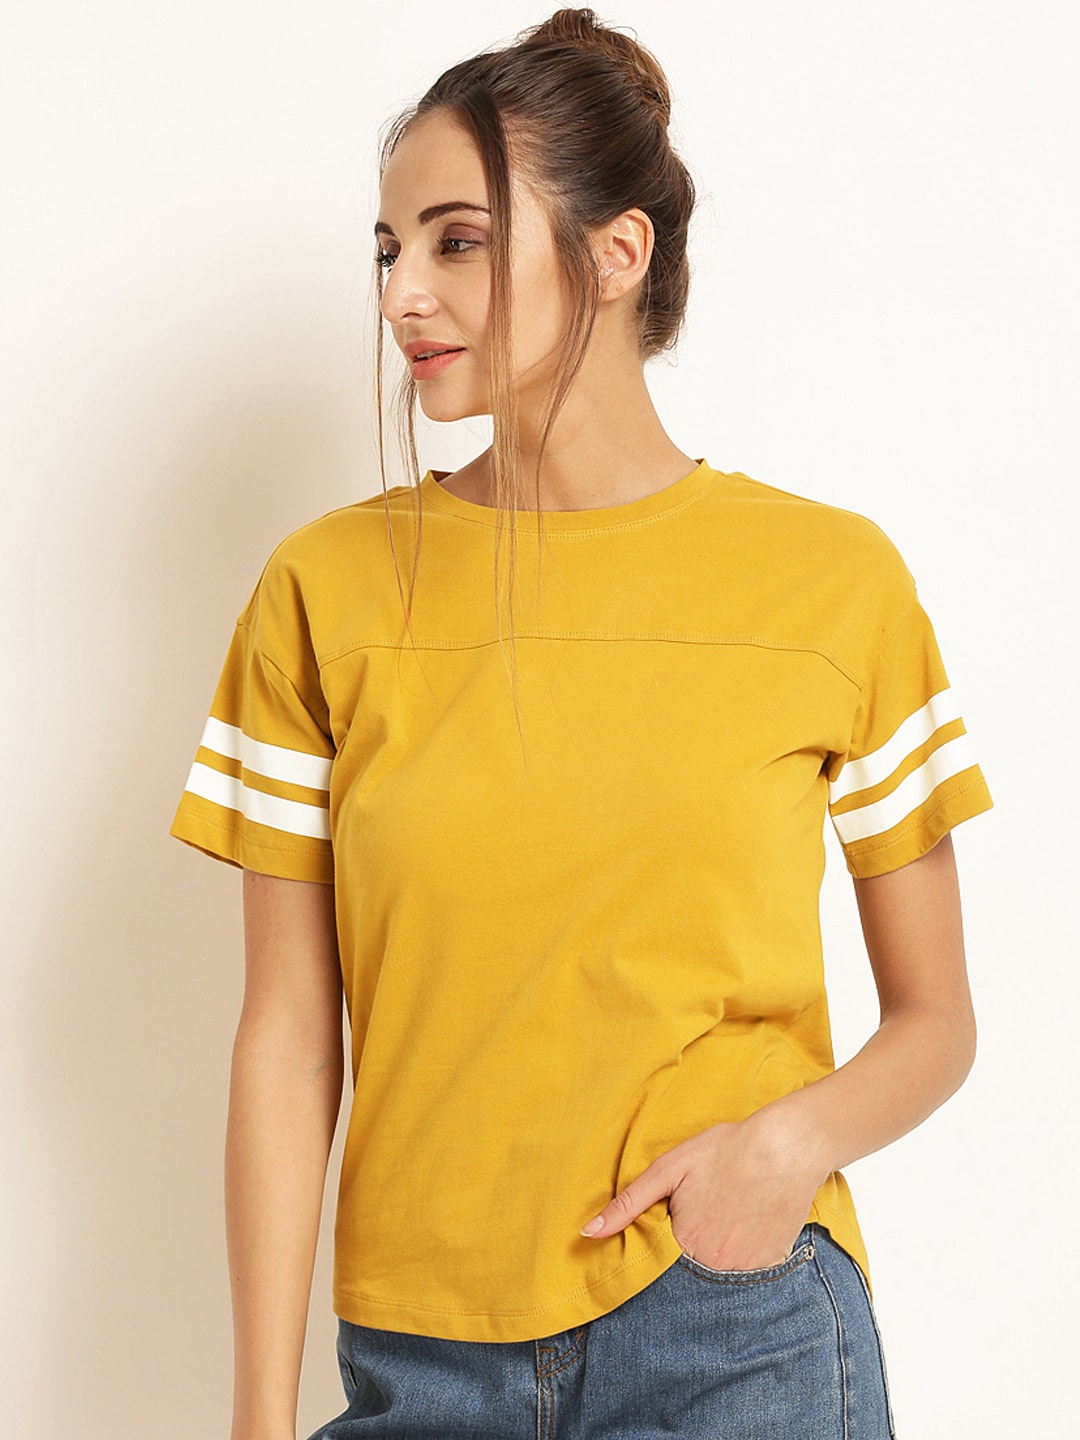 5fb2323ae21bf1 Mustard Yellow Tops - Buy Mustard Yellow Tops online in India